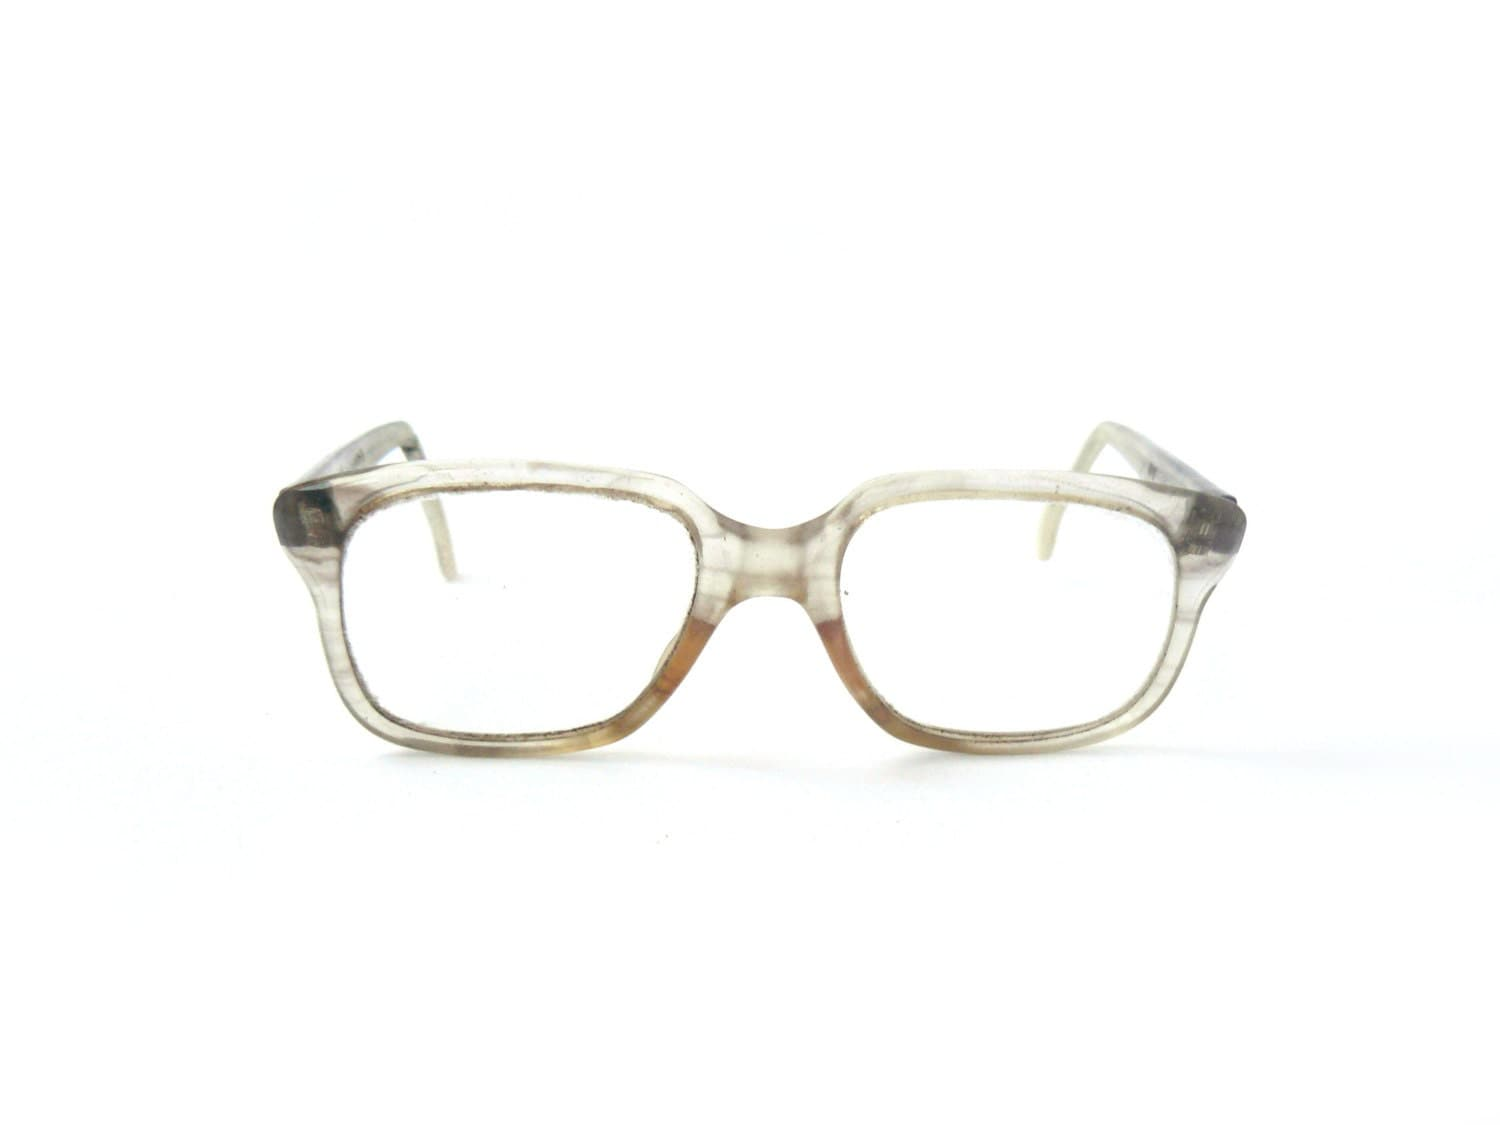 vintage reading glasses spectacle frames glasses